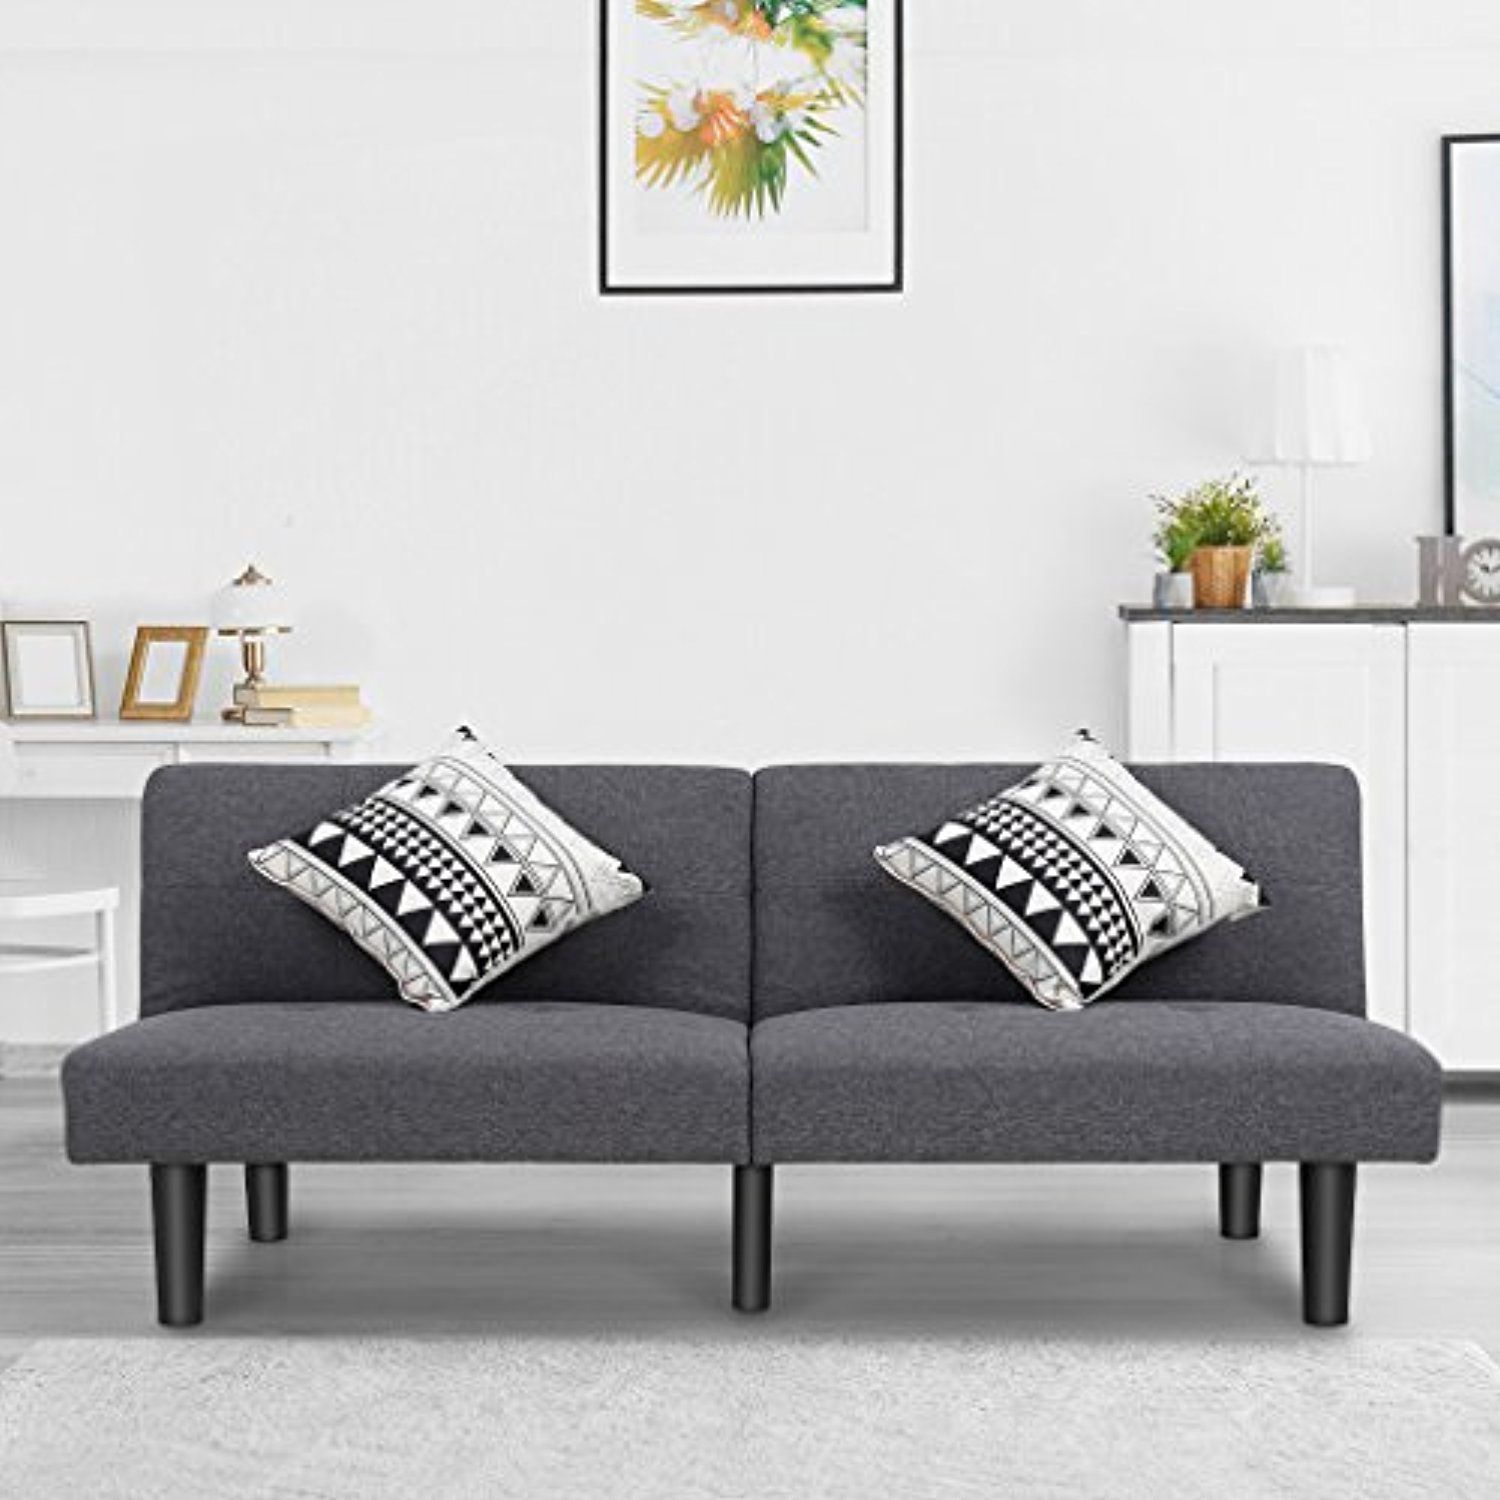 LANGRIA Modern Sofa Bed Upholstered with Soft Breathable